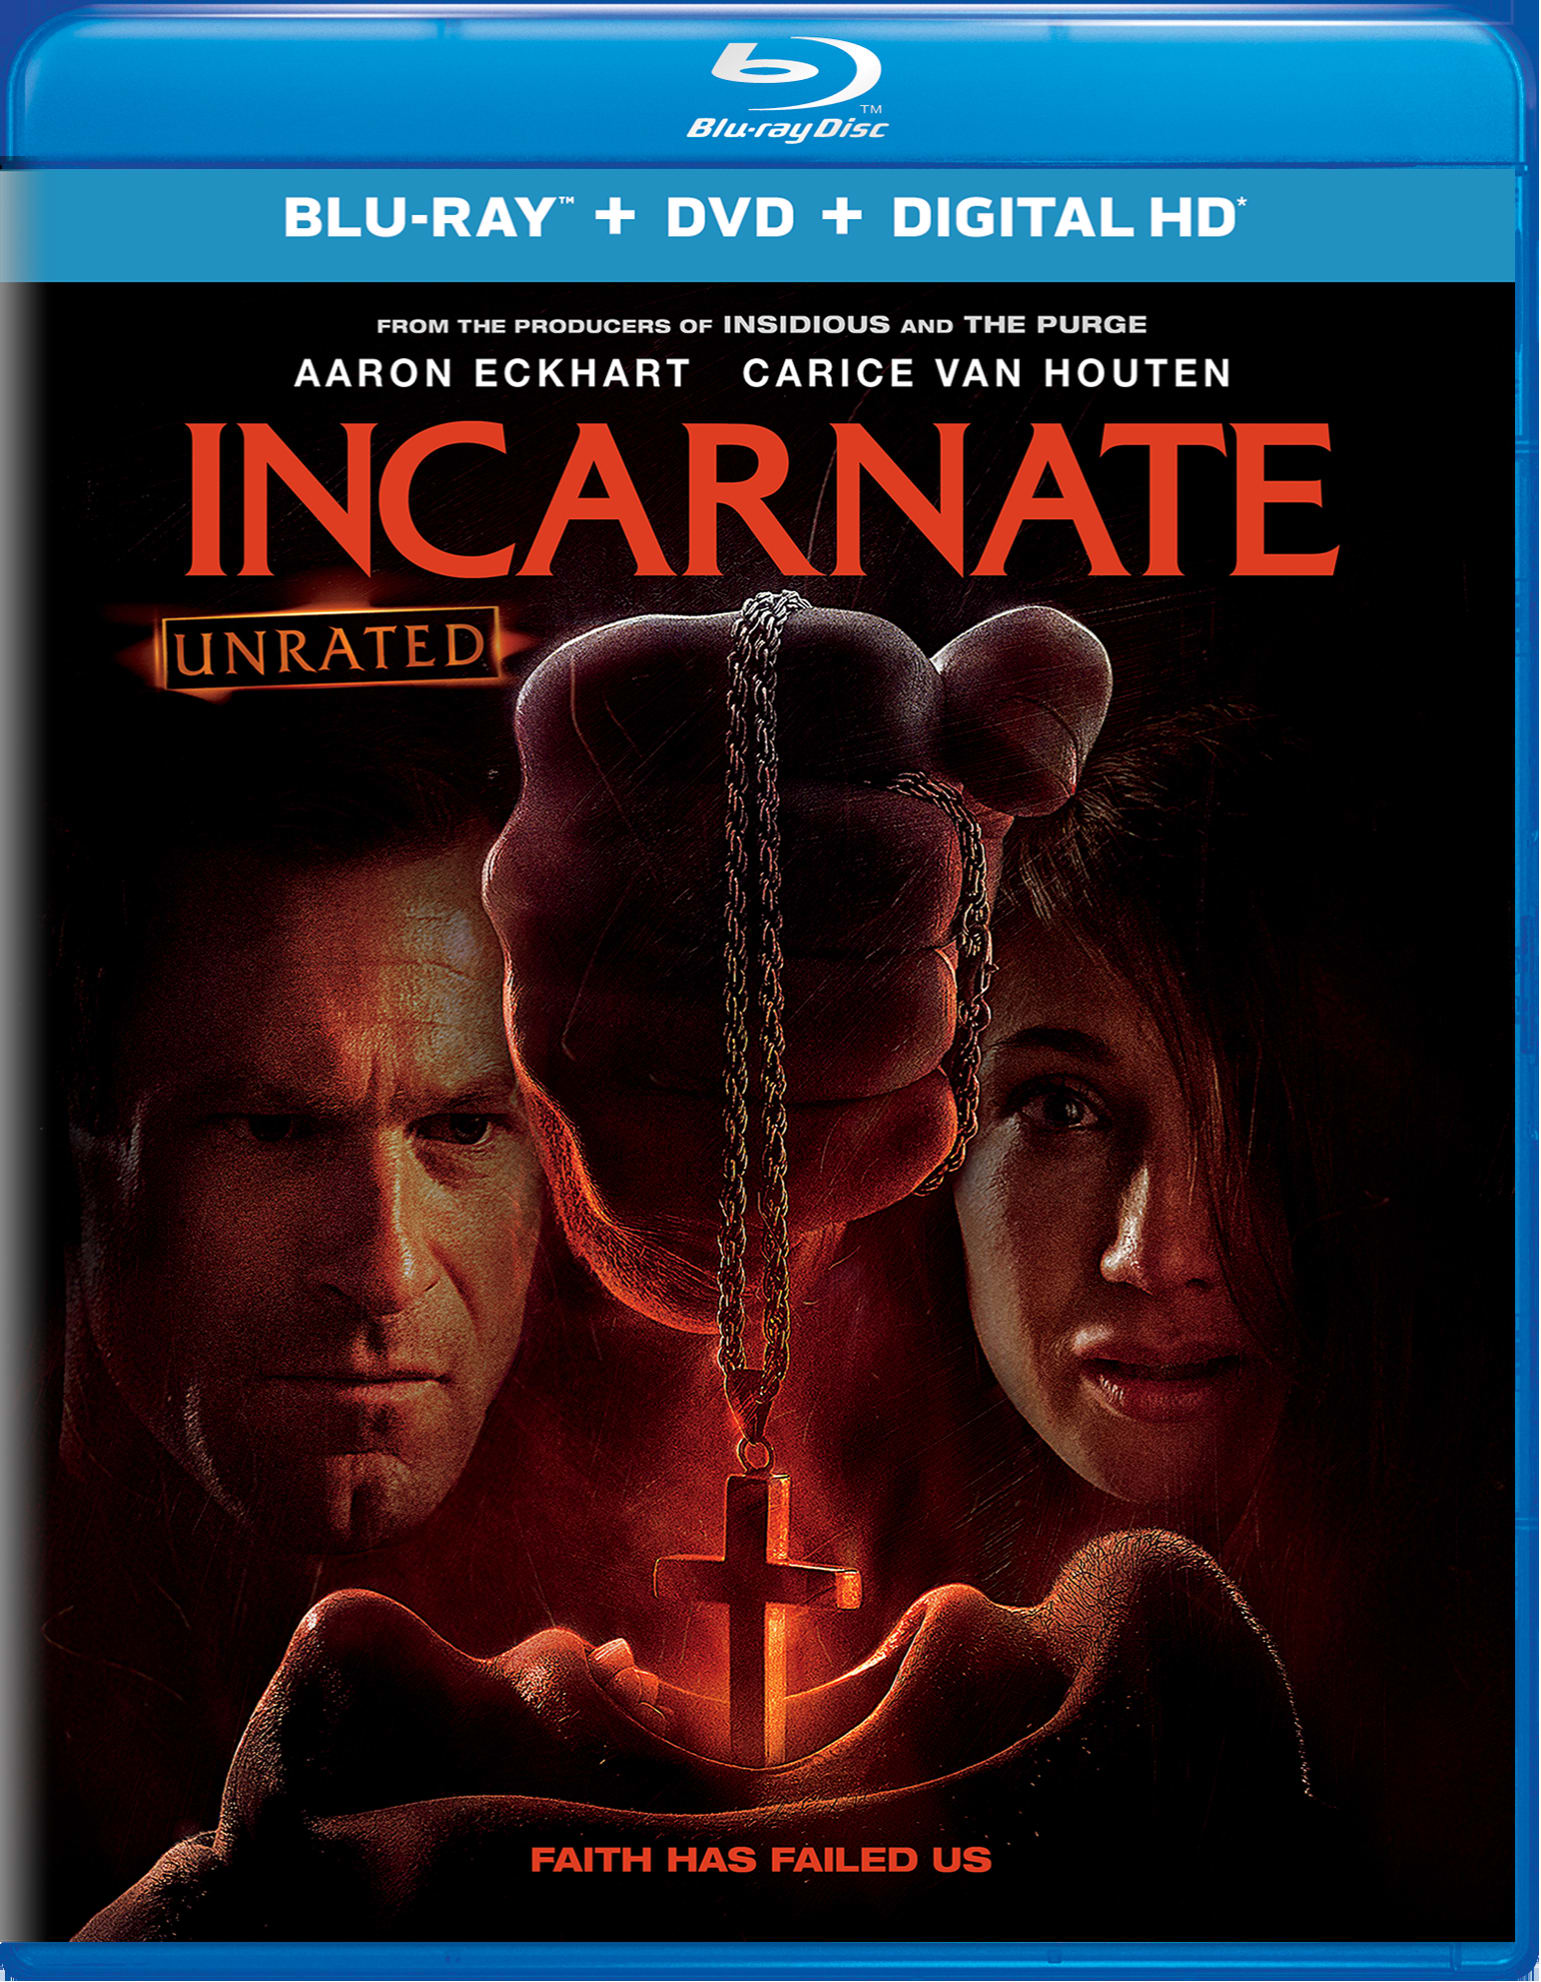 Incarnate (Unrated DVD + Digital) [Blu-ray]